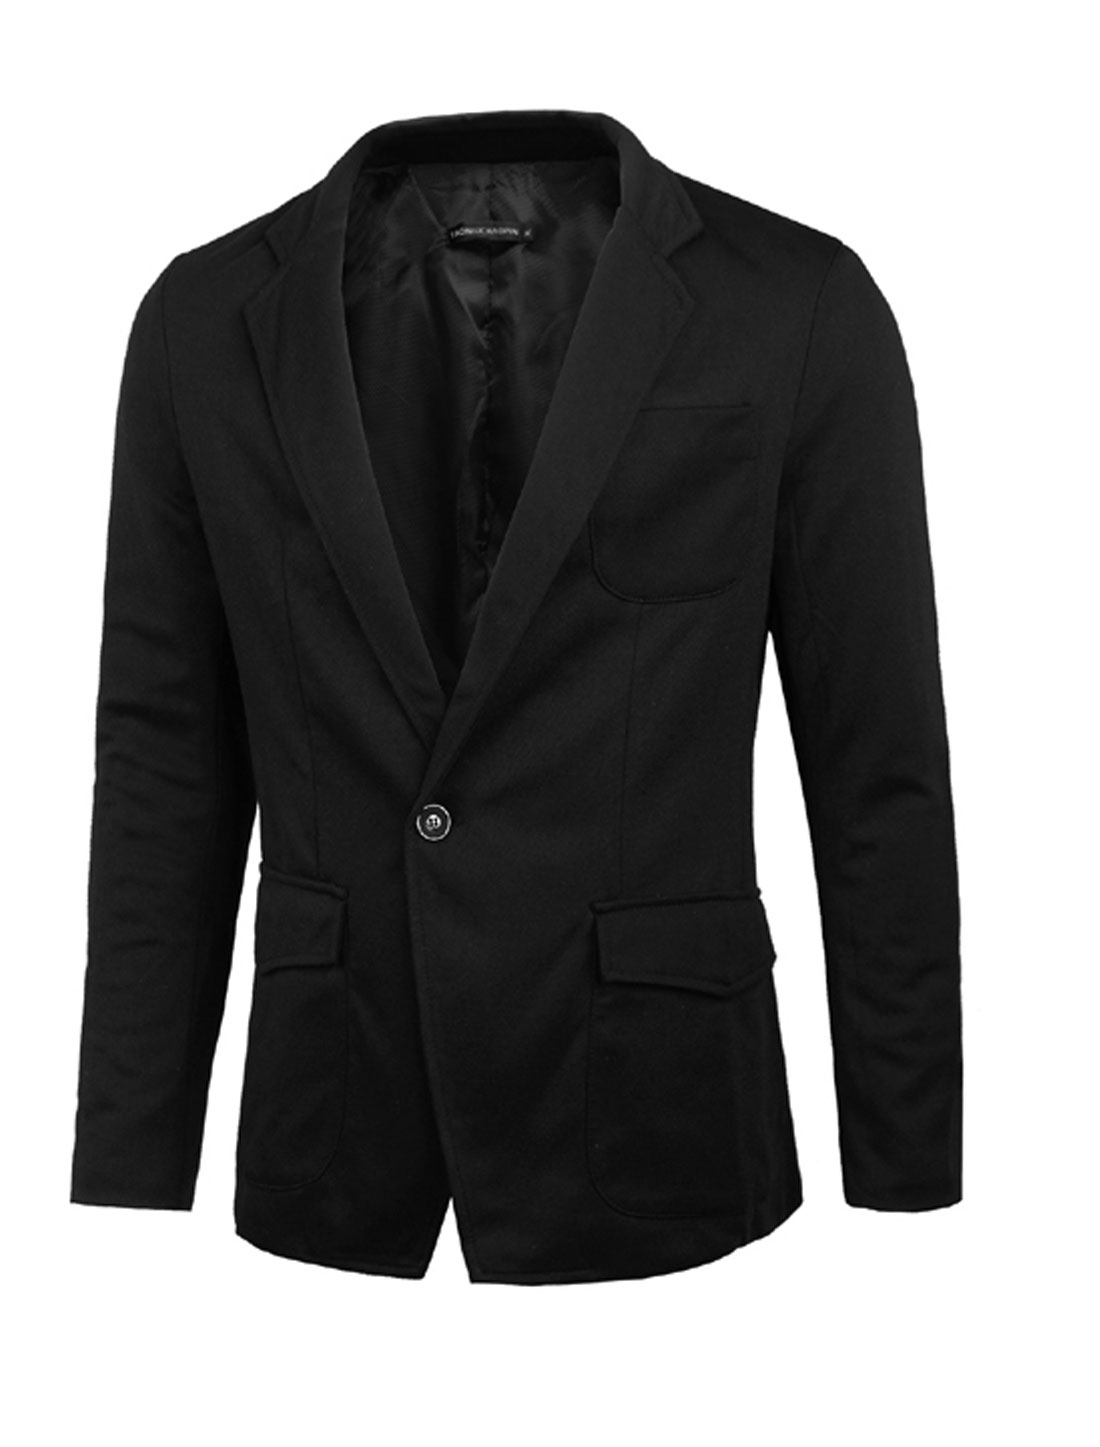 Men Notched Lapel One Button Closed Casual Blazer Jacket Black M